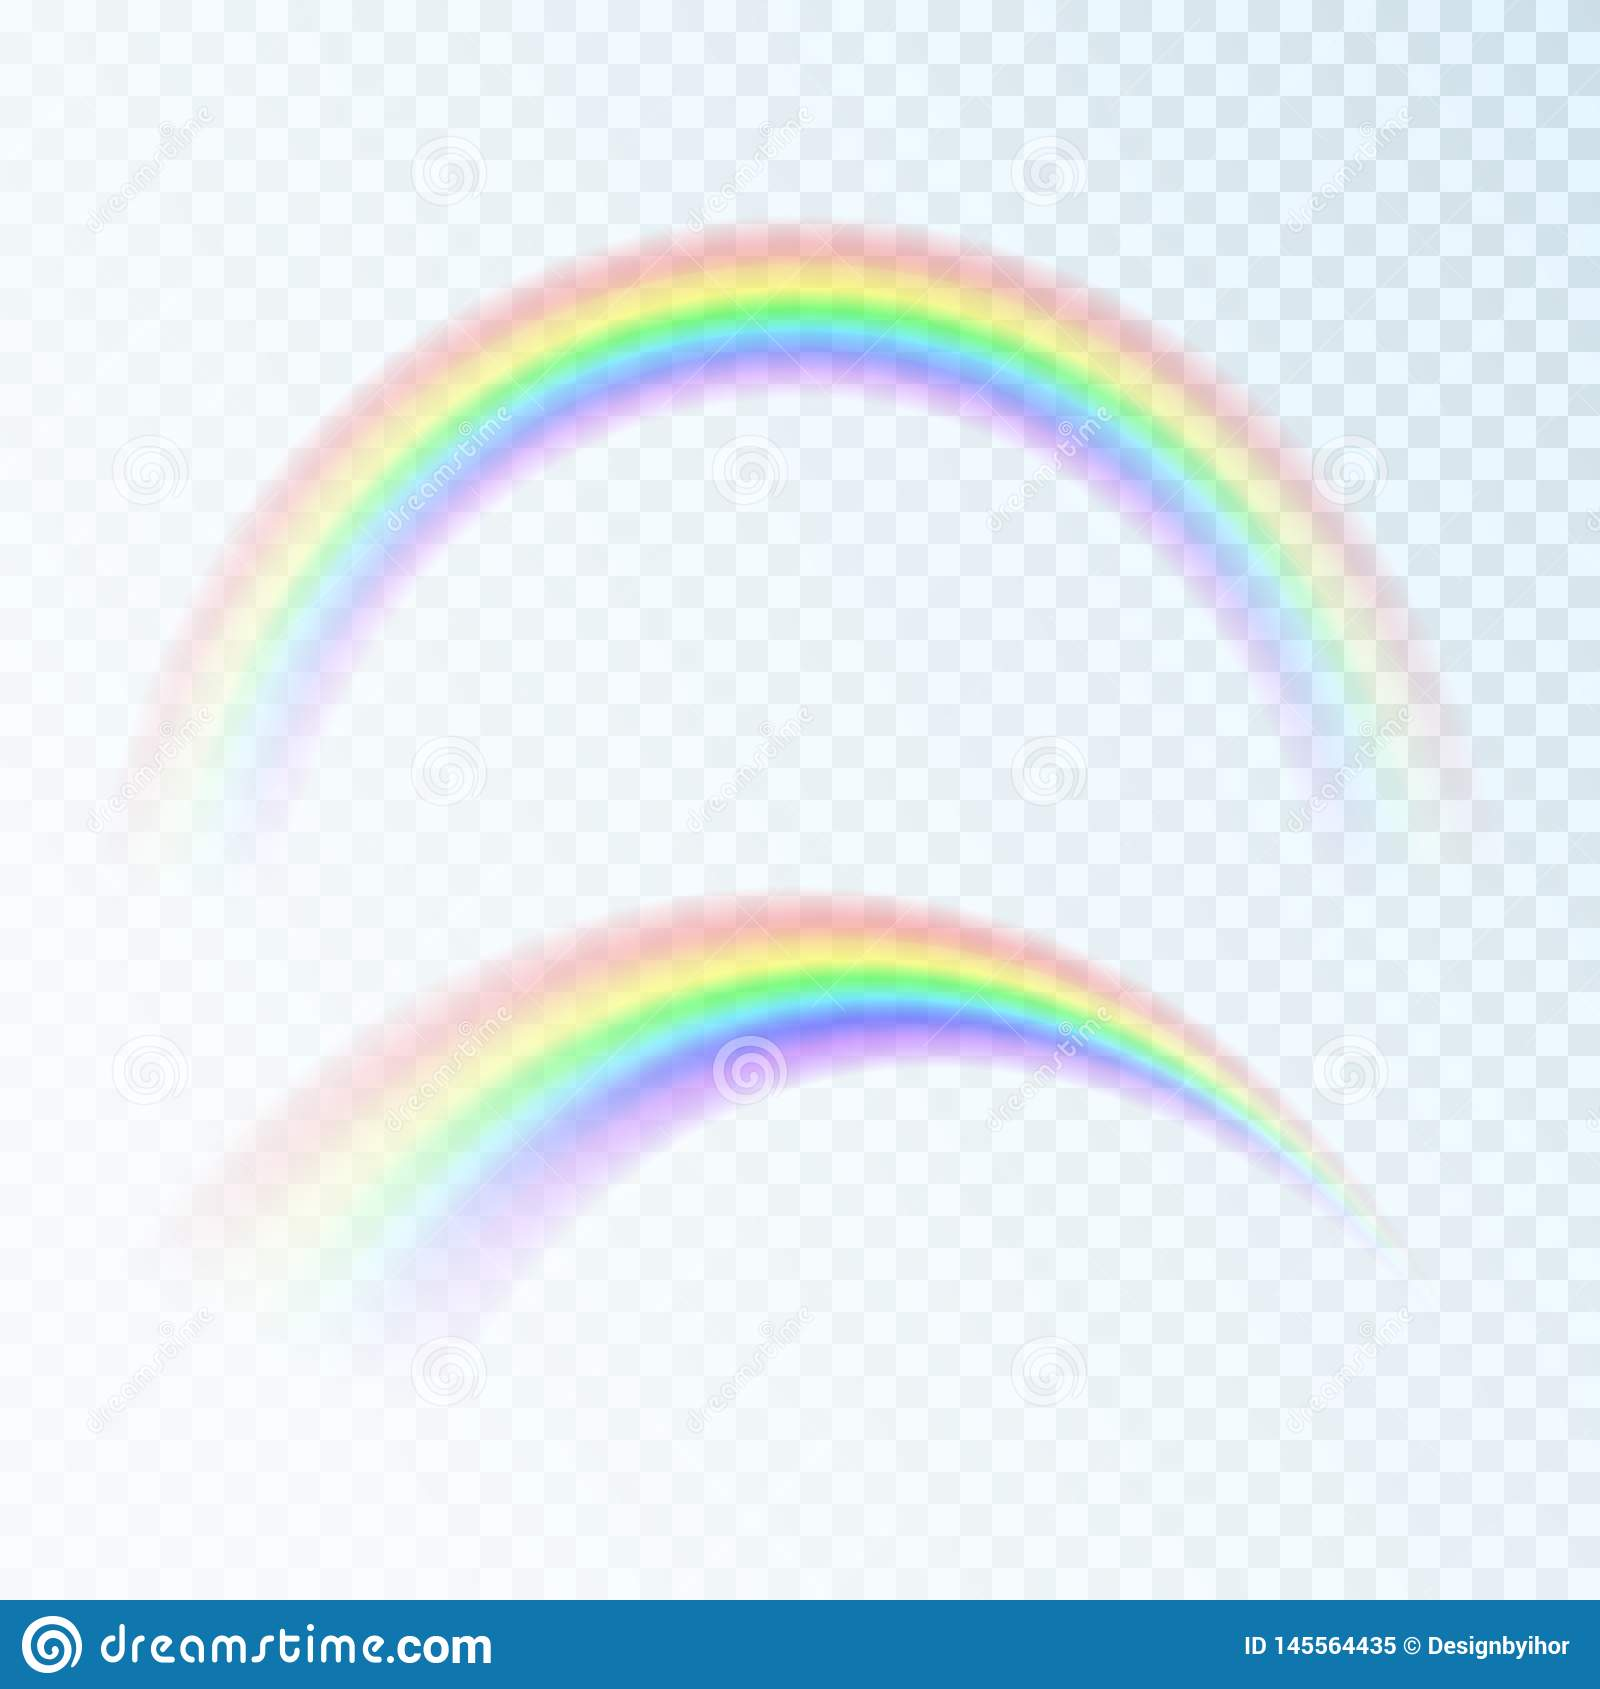 Color Abstract Rainbow. Spectrum of light, seven colors. Vector illustration isolated on transparent background